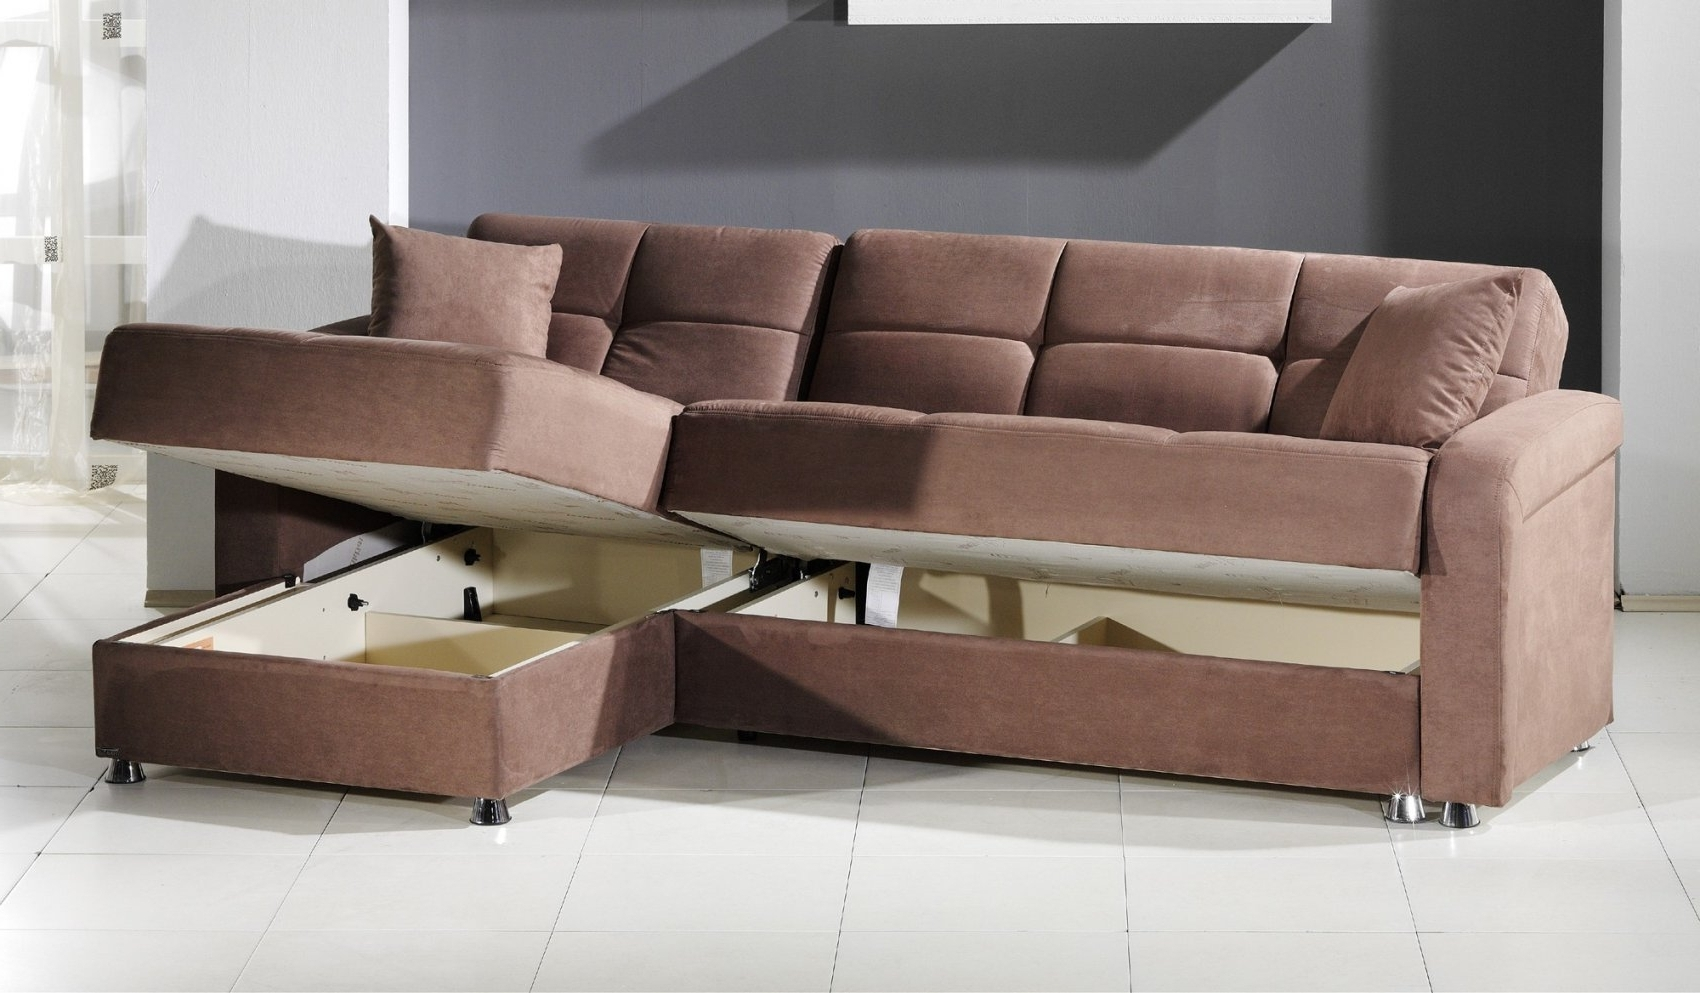 Brown Leather Sectional Sleeper Sofa With Chaise Lounge And With Regarding Most Recently Released Sleeper Sofas With Chaise And Storage (View 13 of 15)